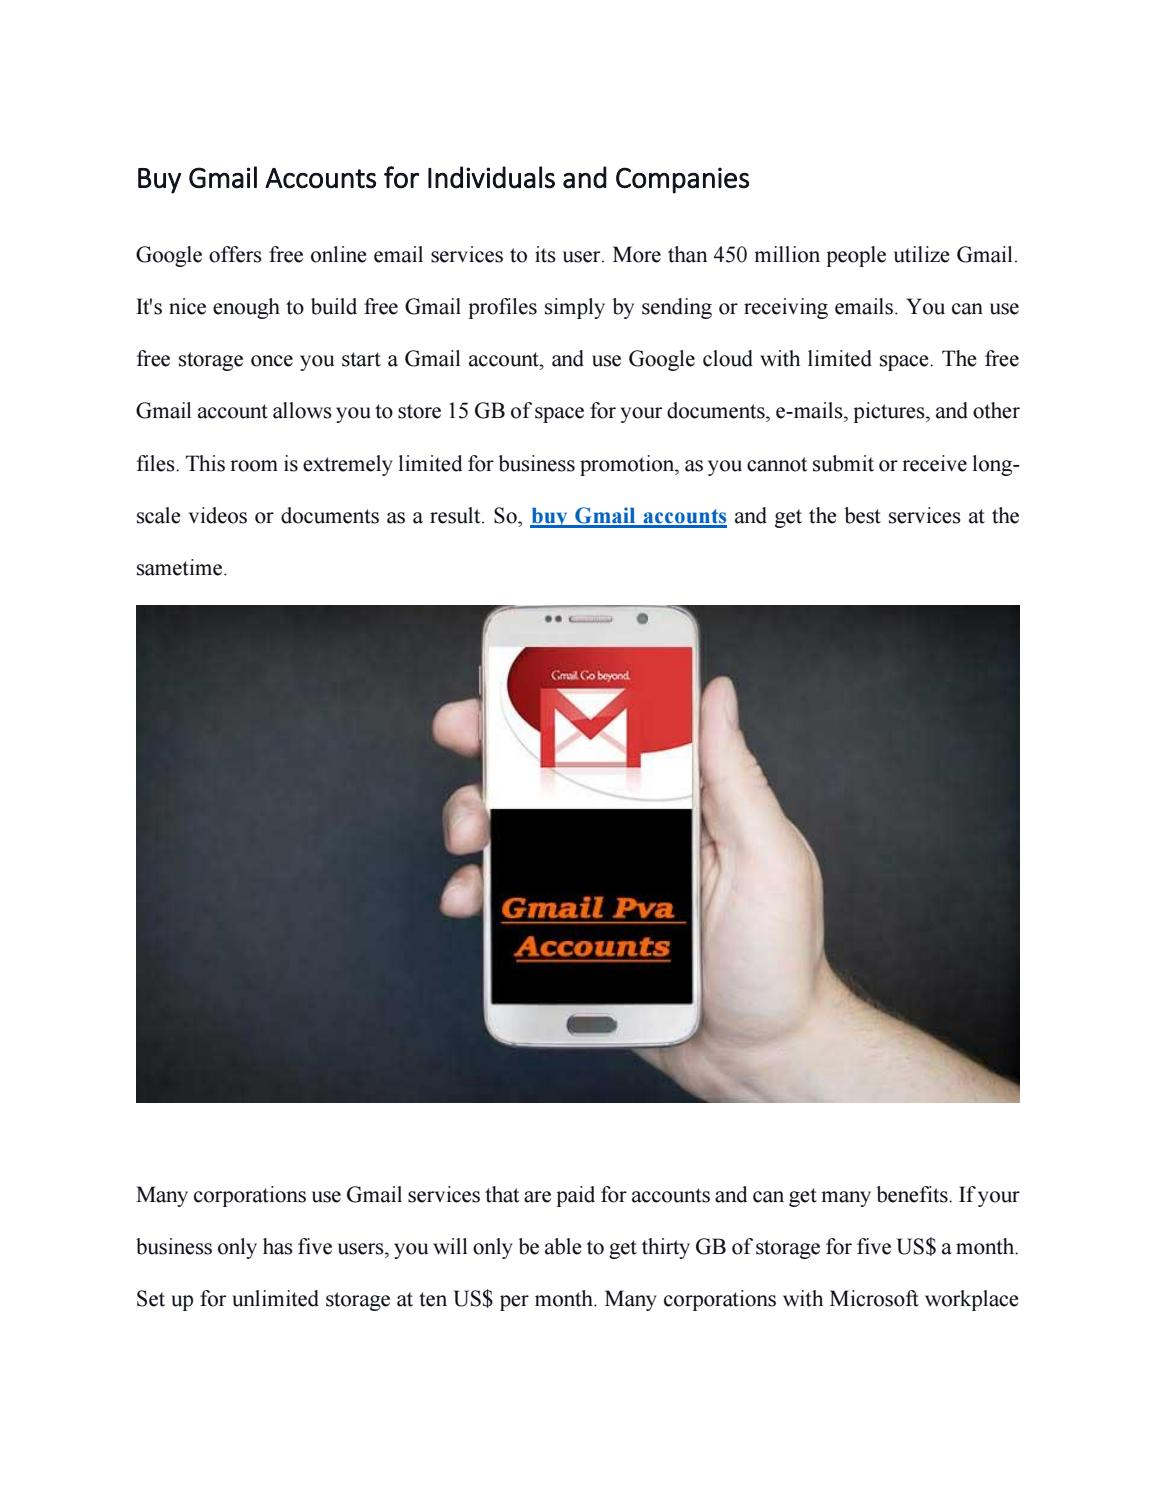 Buy Gmail Accounts For Individuals And Companies By Pvagmailaccs Issuu